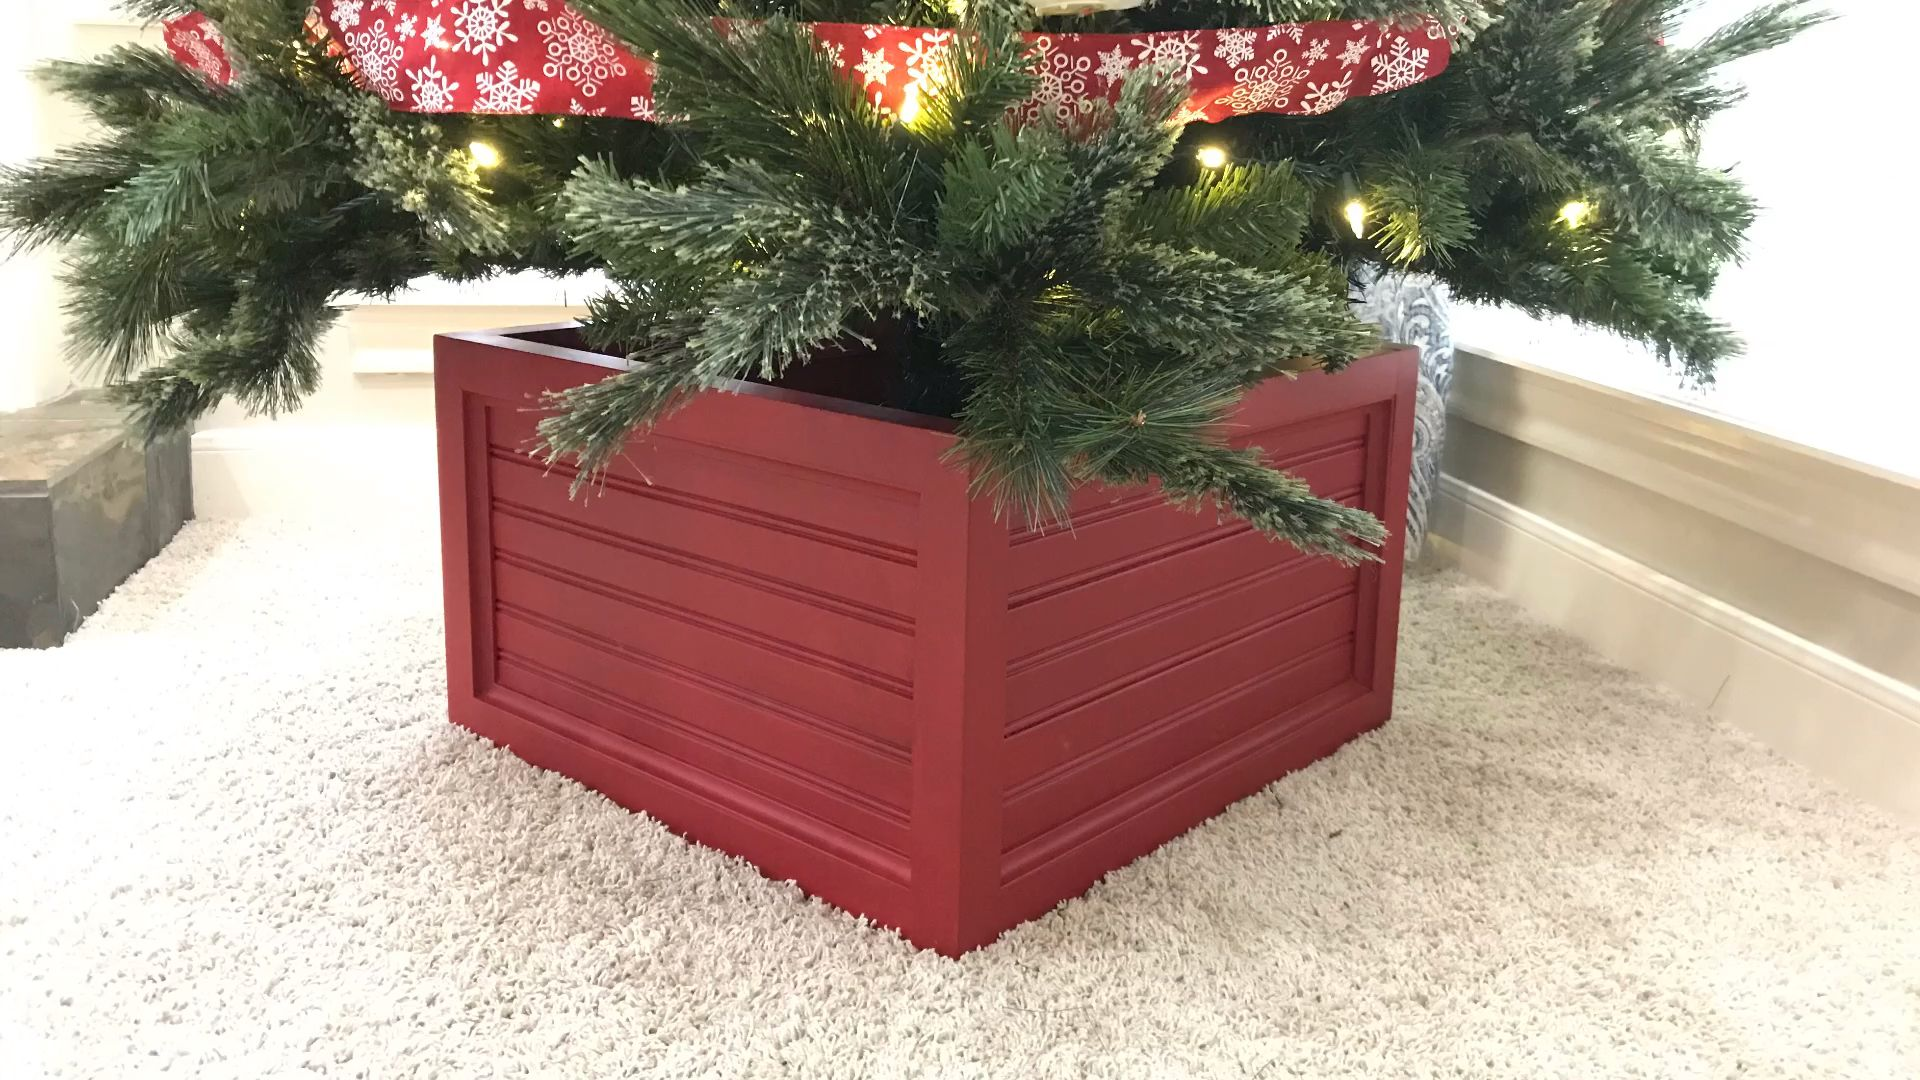 Diy Christmas Tree Box Stand And Ornament Storage Abbotts At Home Video Video Christmas Tree Box Stand Christmas Tree Box Diy Christmas Tree